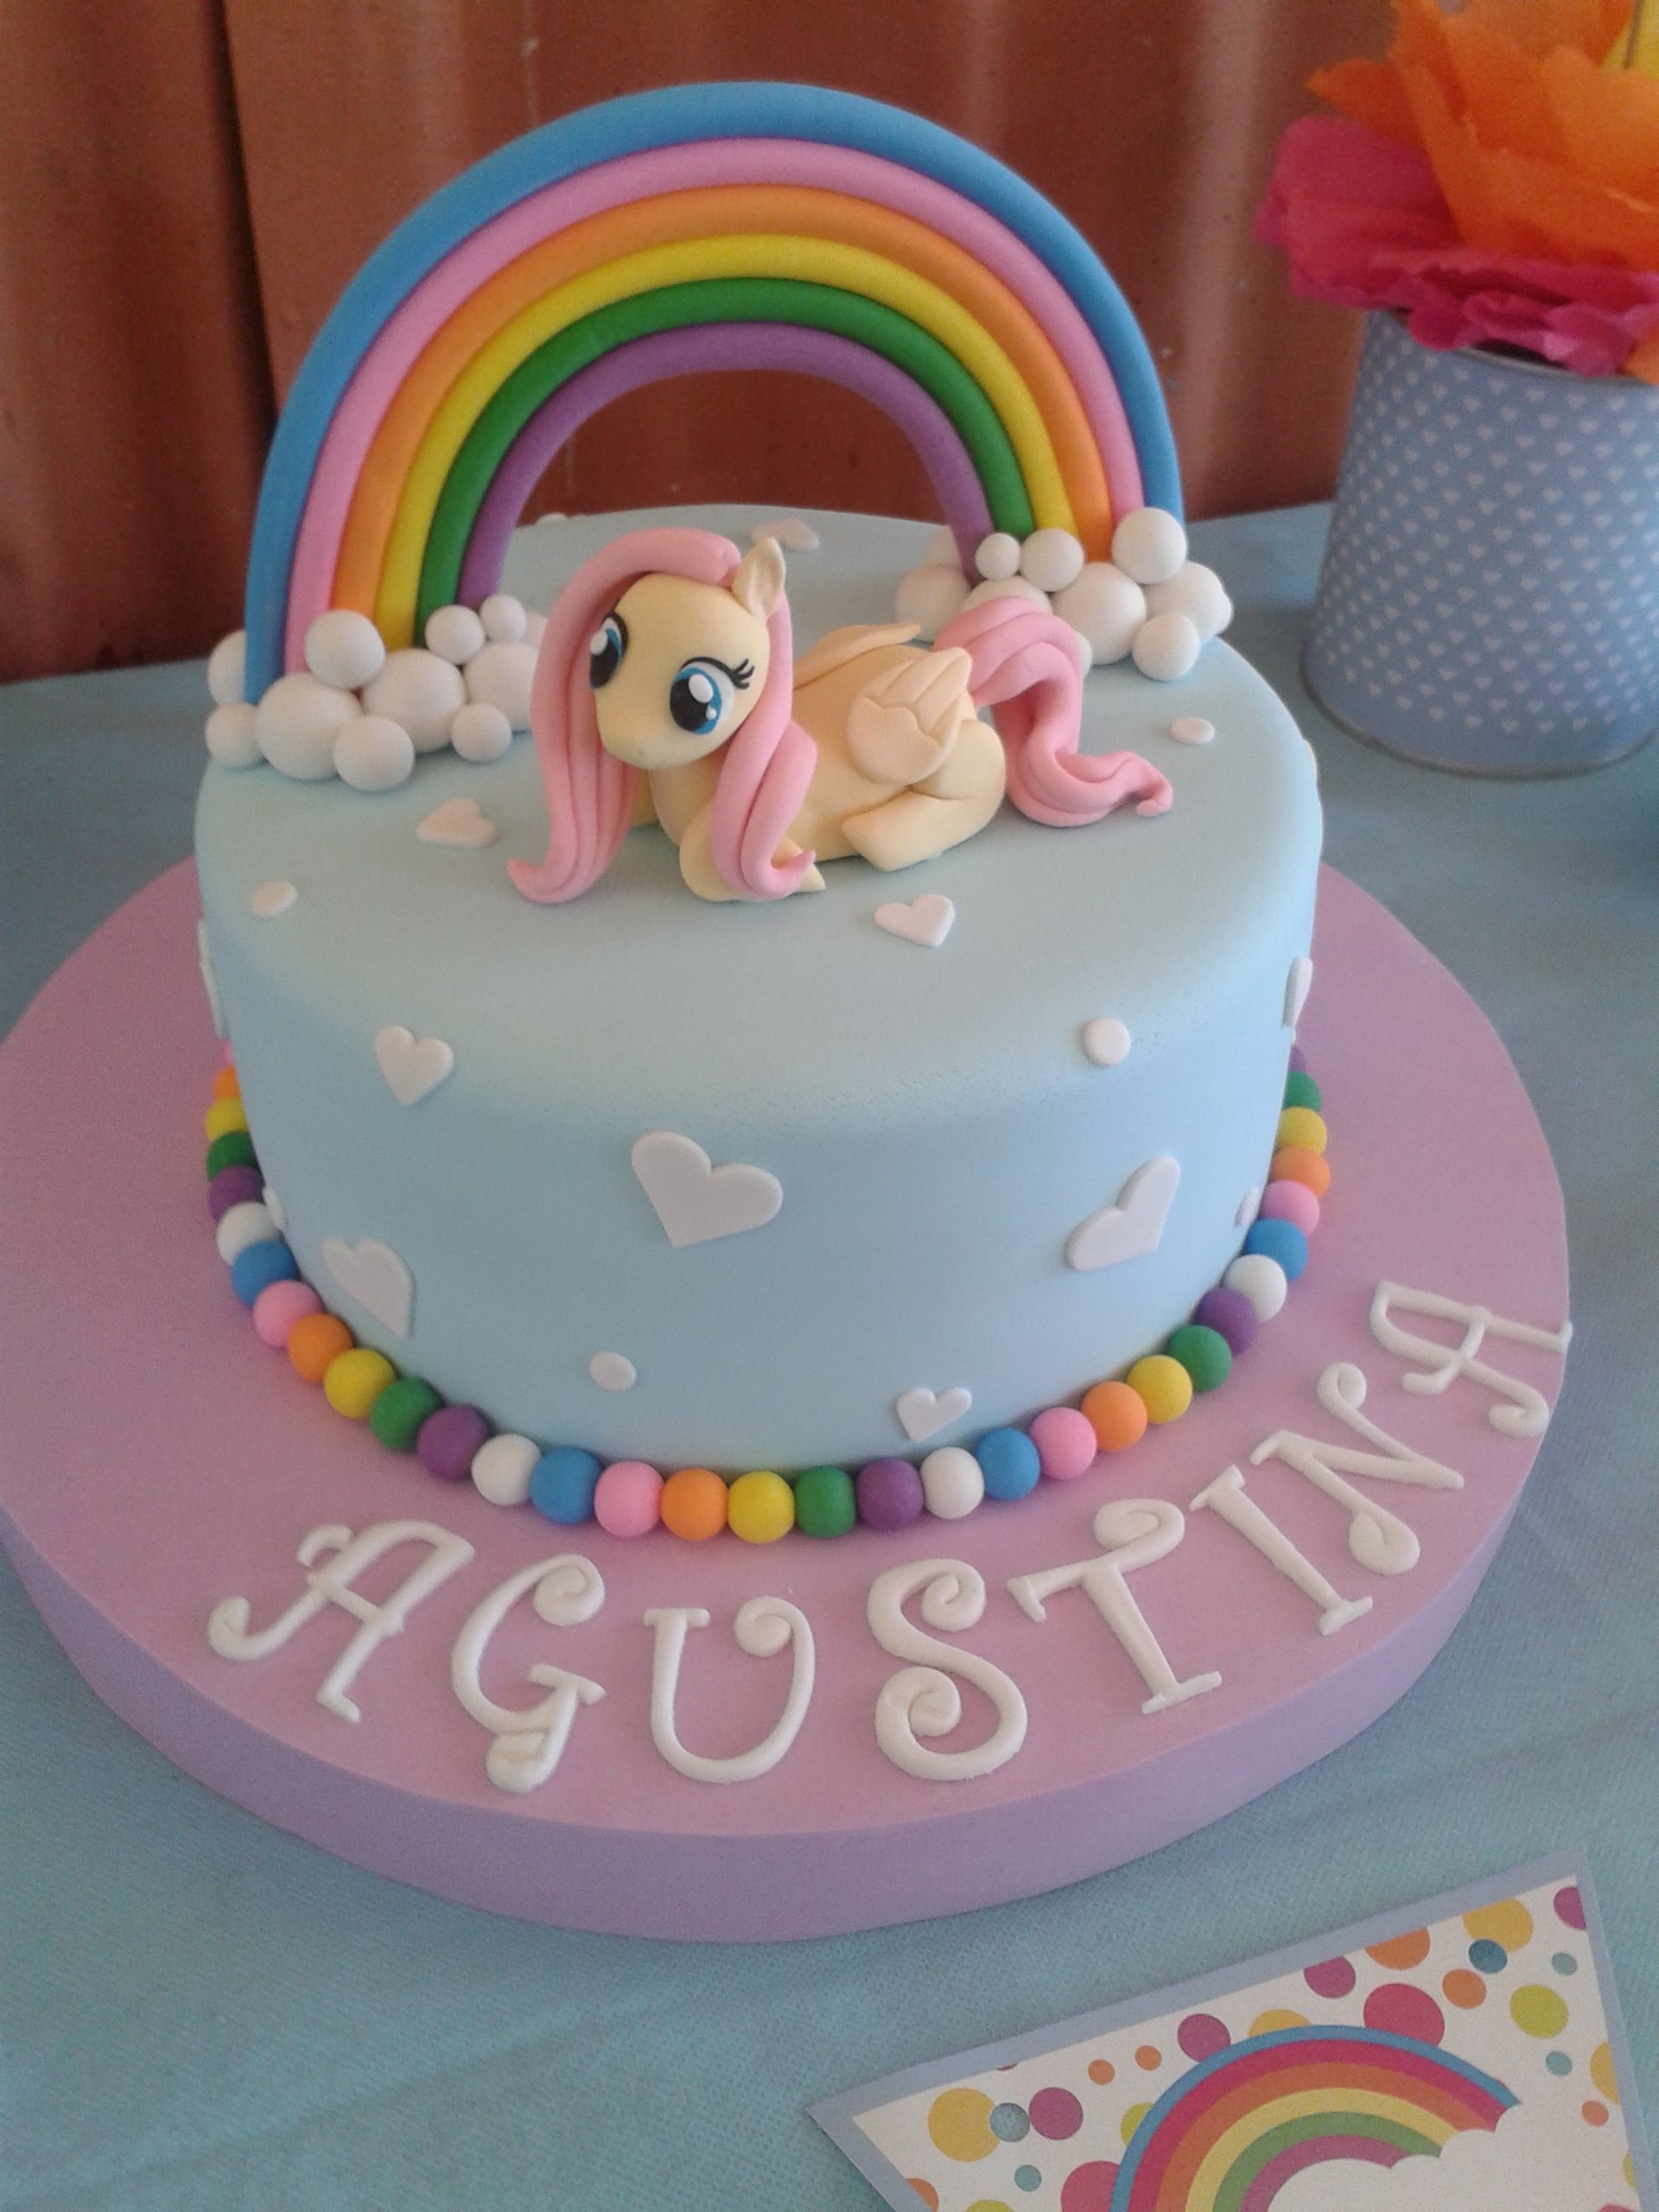 My Little Pony Torta My Little Pony Cake My Little Pony Party